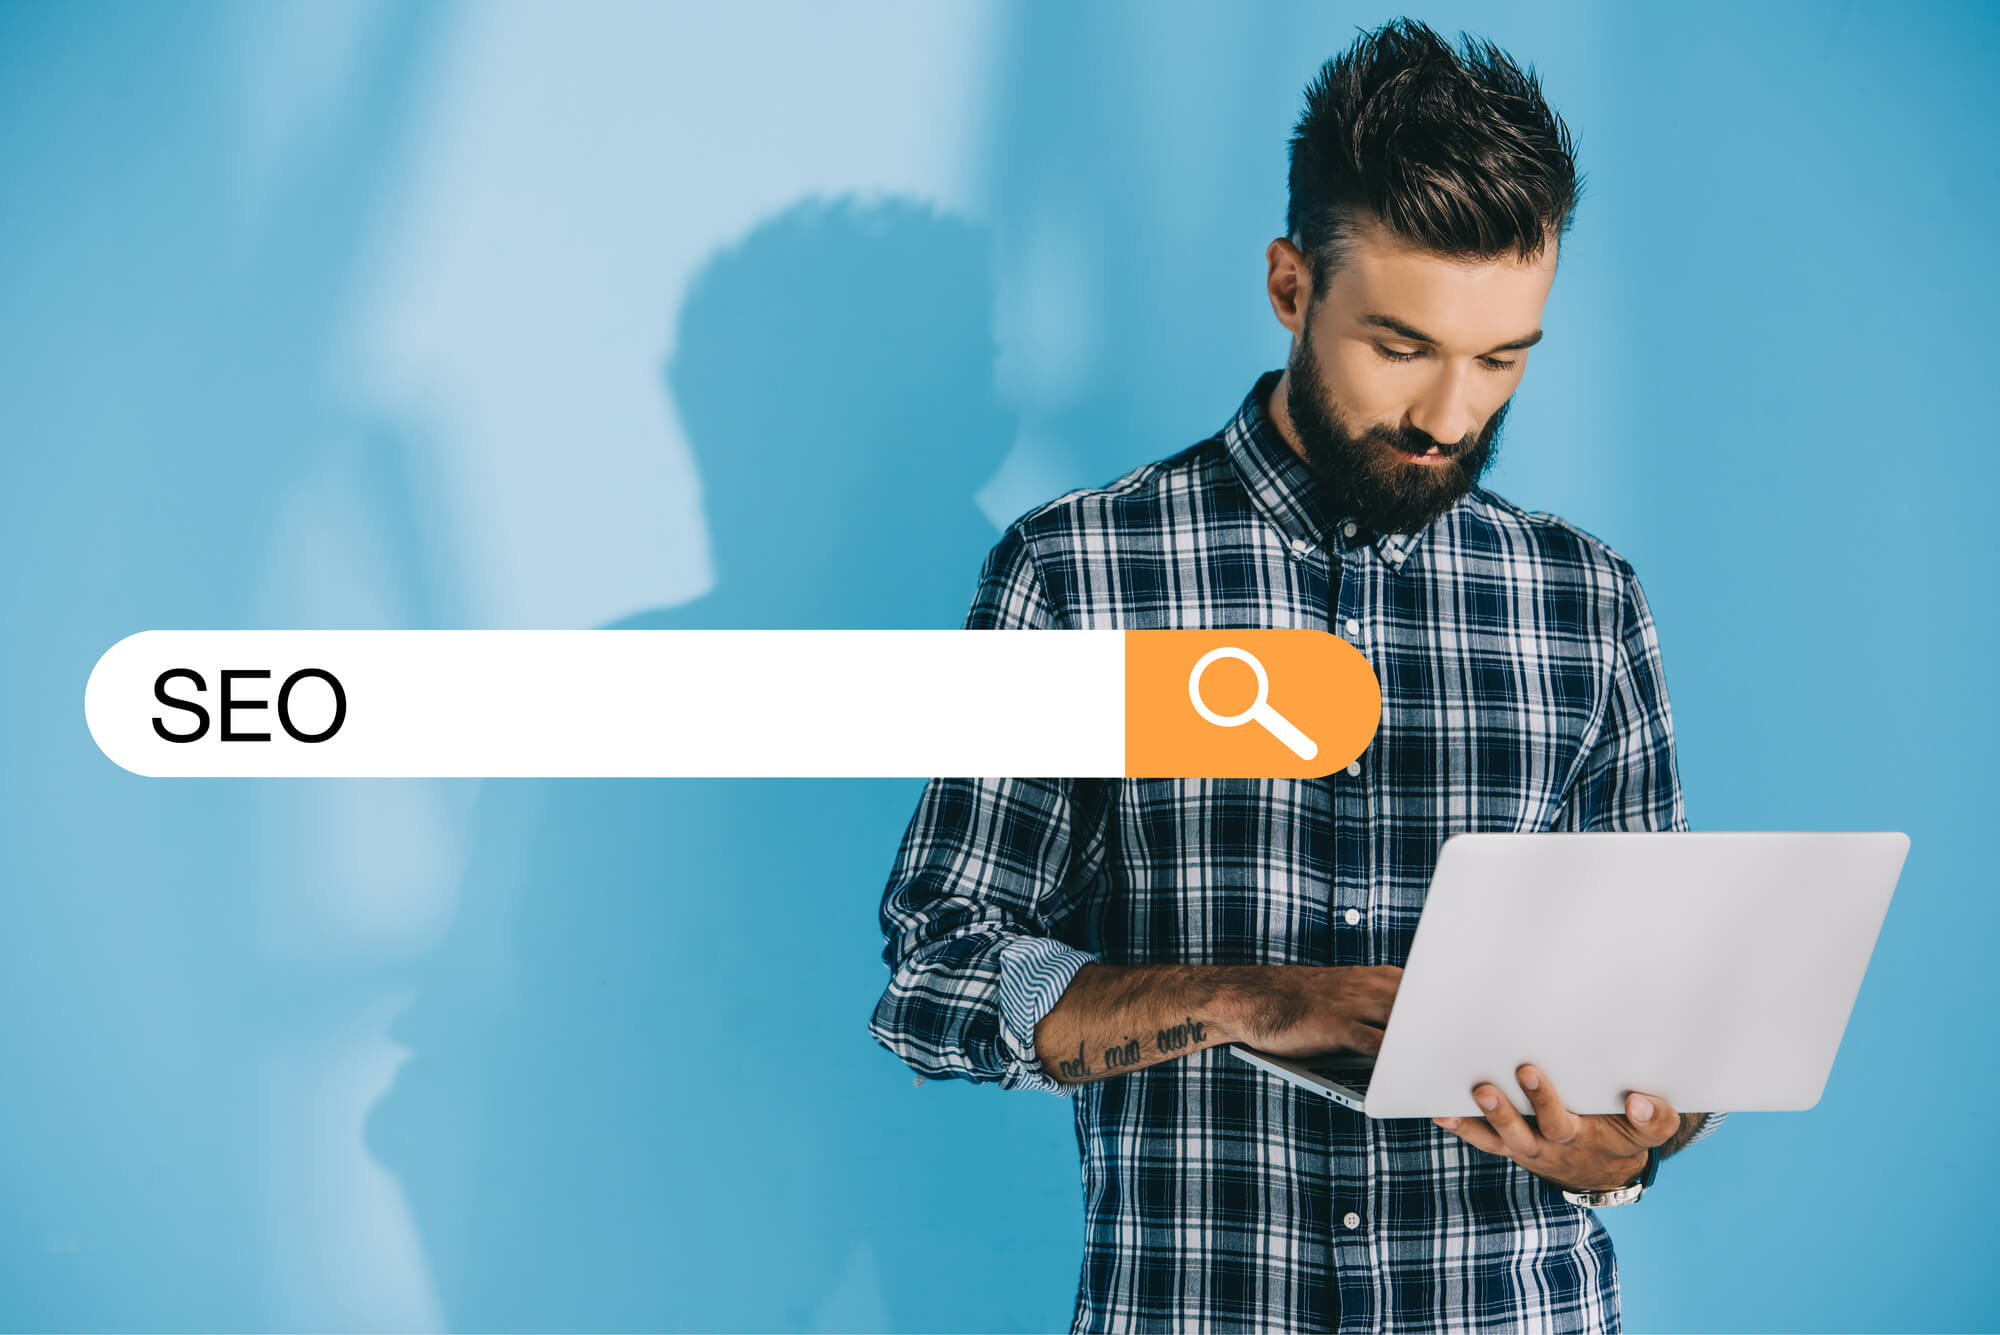 man-holding-laptop-searching-for-seo-online